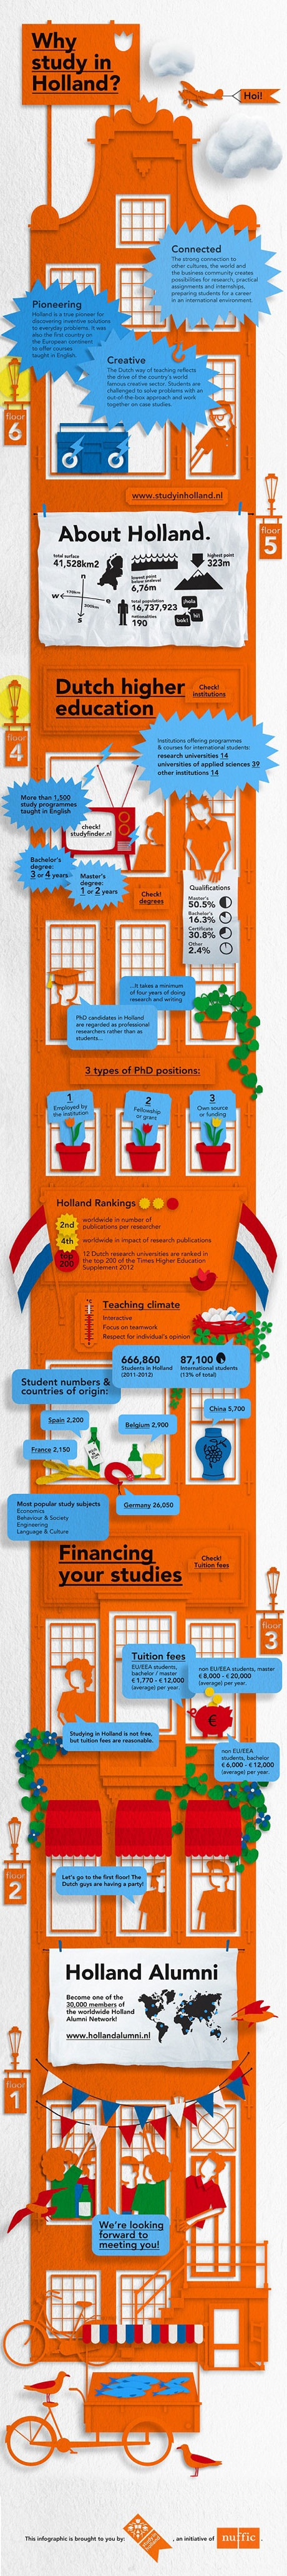 Why study in Holland - in graphics — Study in Holland